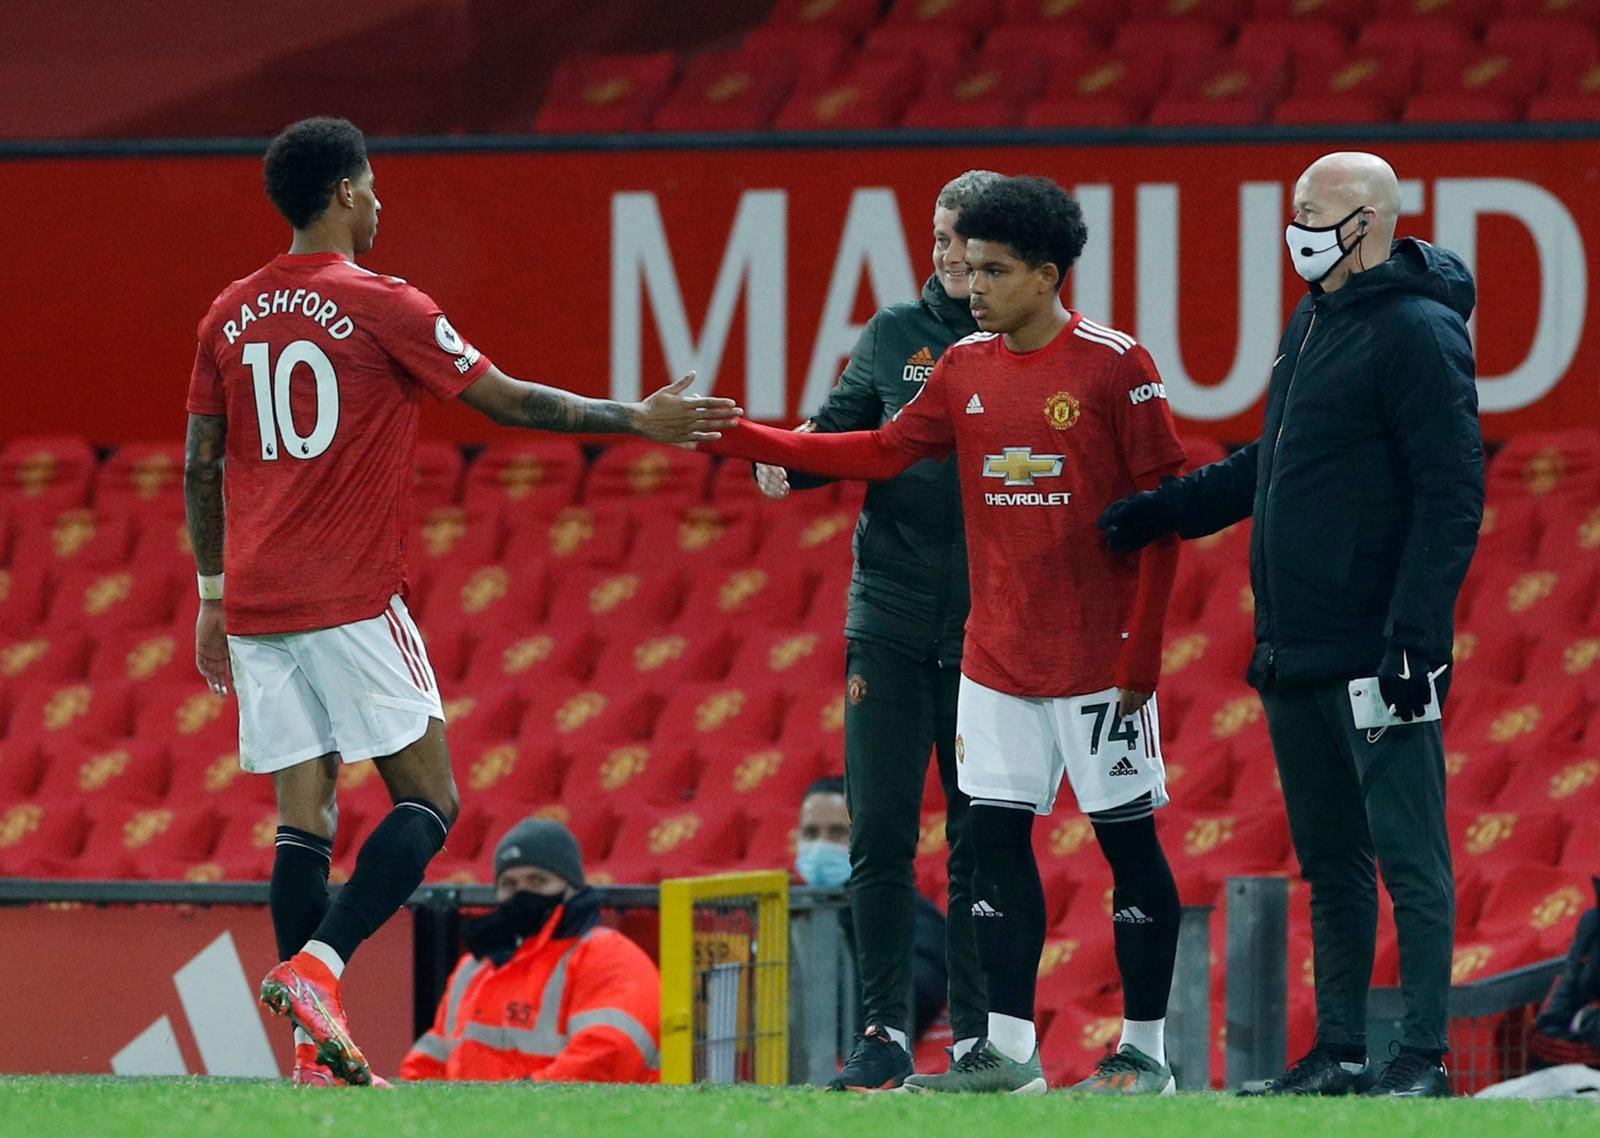 Nigeria's Shoretire Thrilled With Manchester United Debut